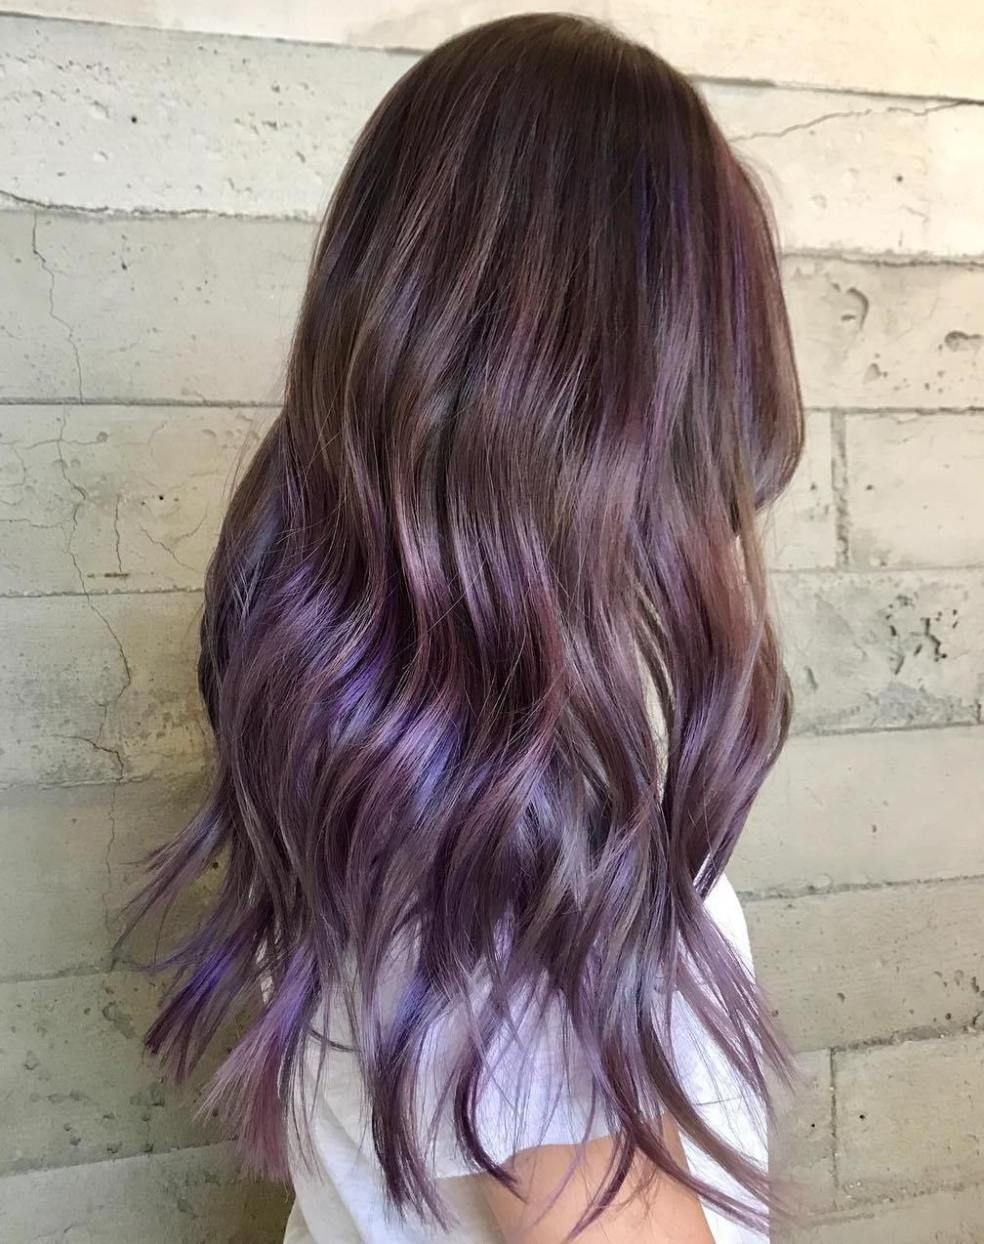 Brown and purple hairstyles